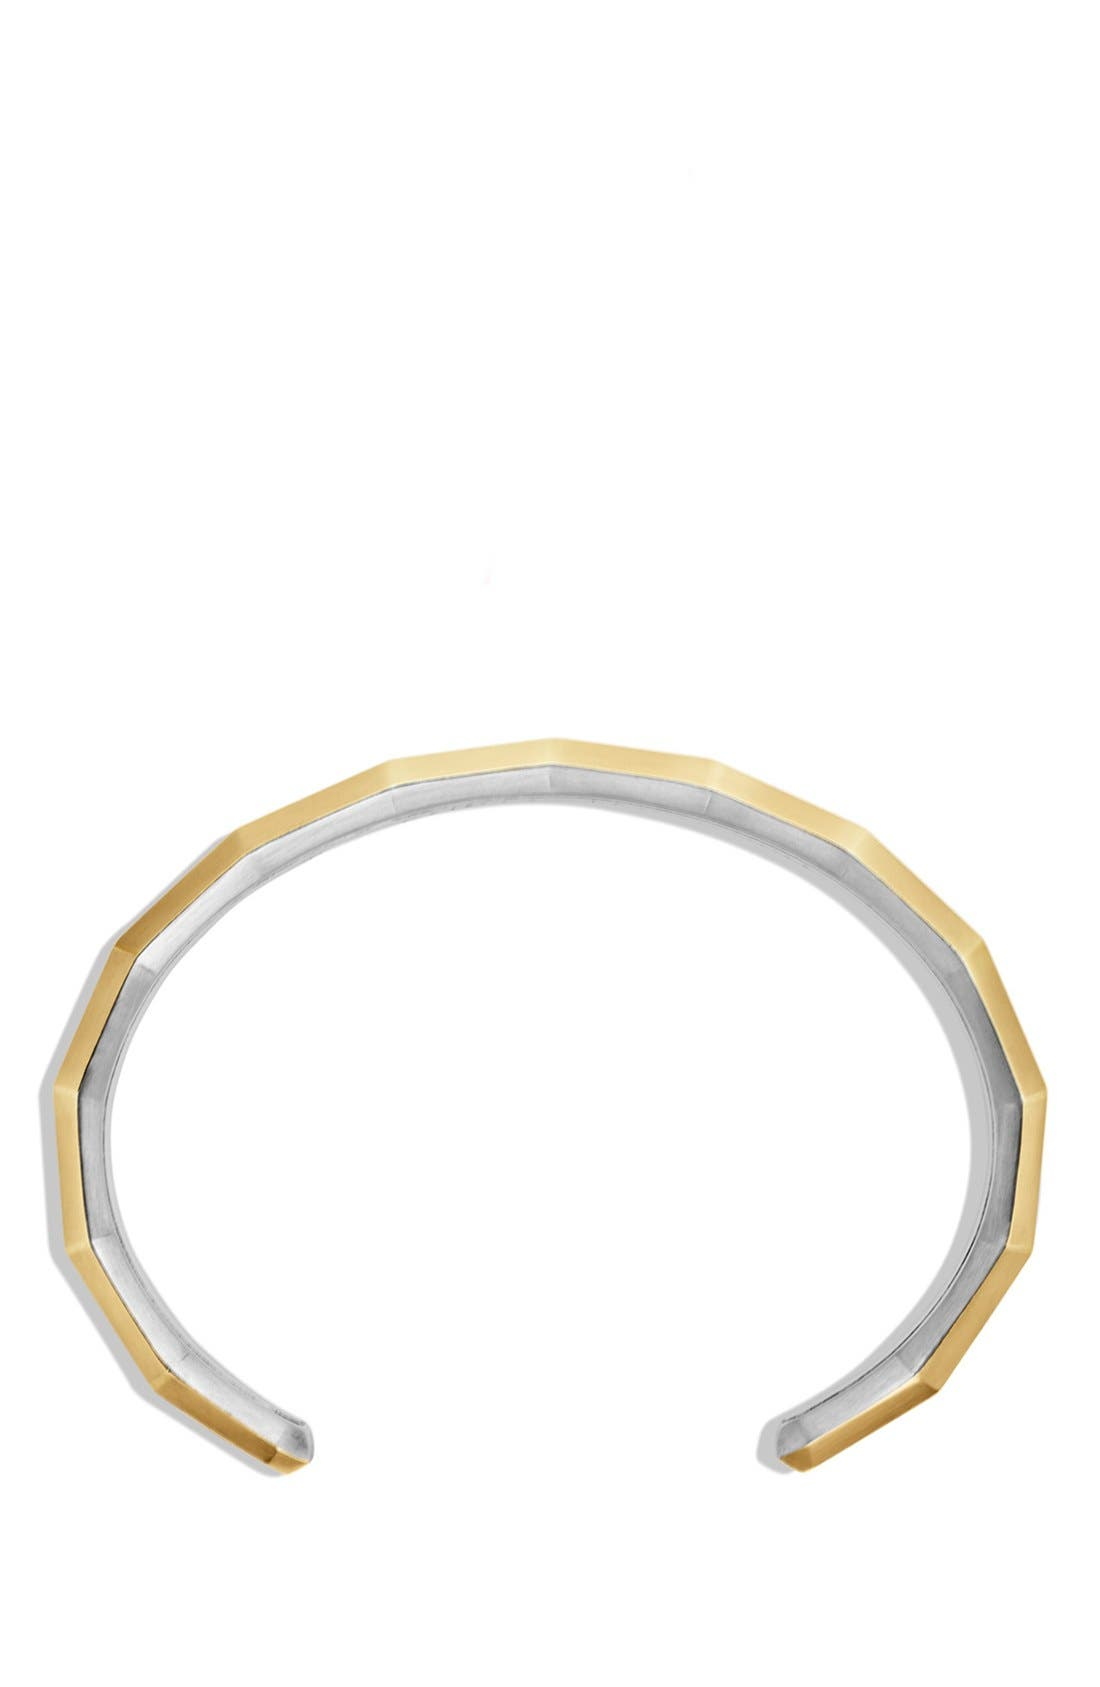 'Faceted Metal' Cuff Bracelet with 18k Gold,                             Alternate thumbnail 2, color,                             041